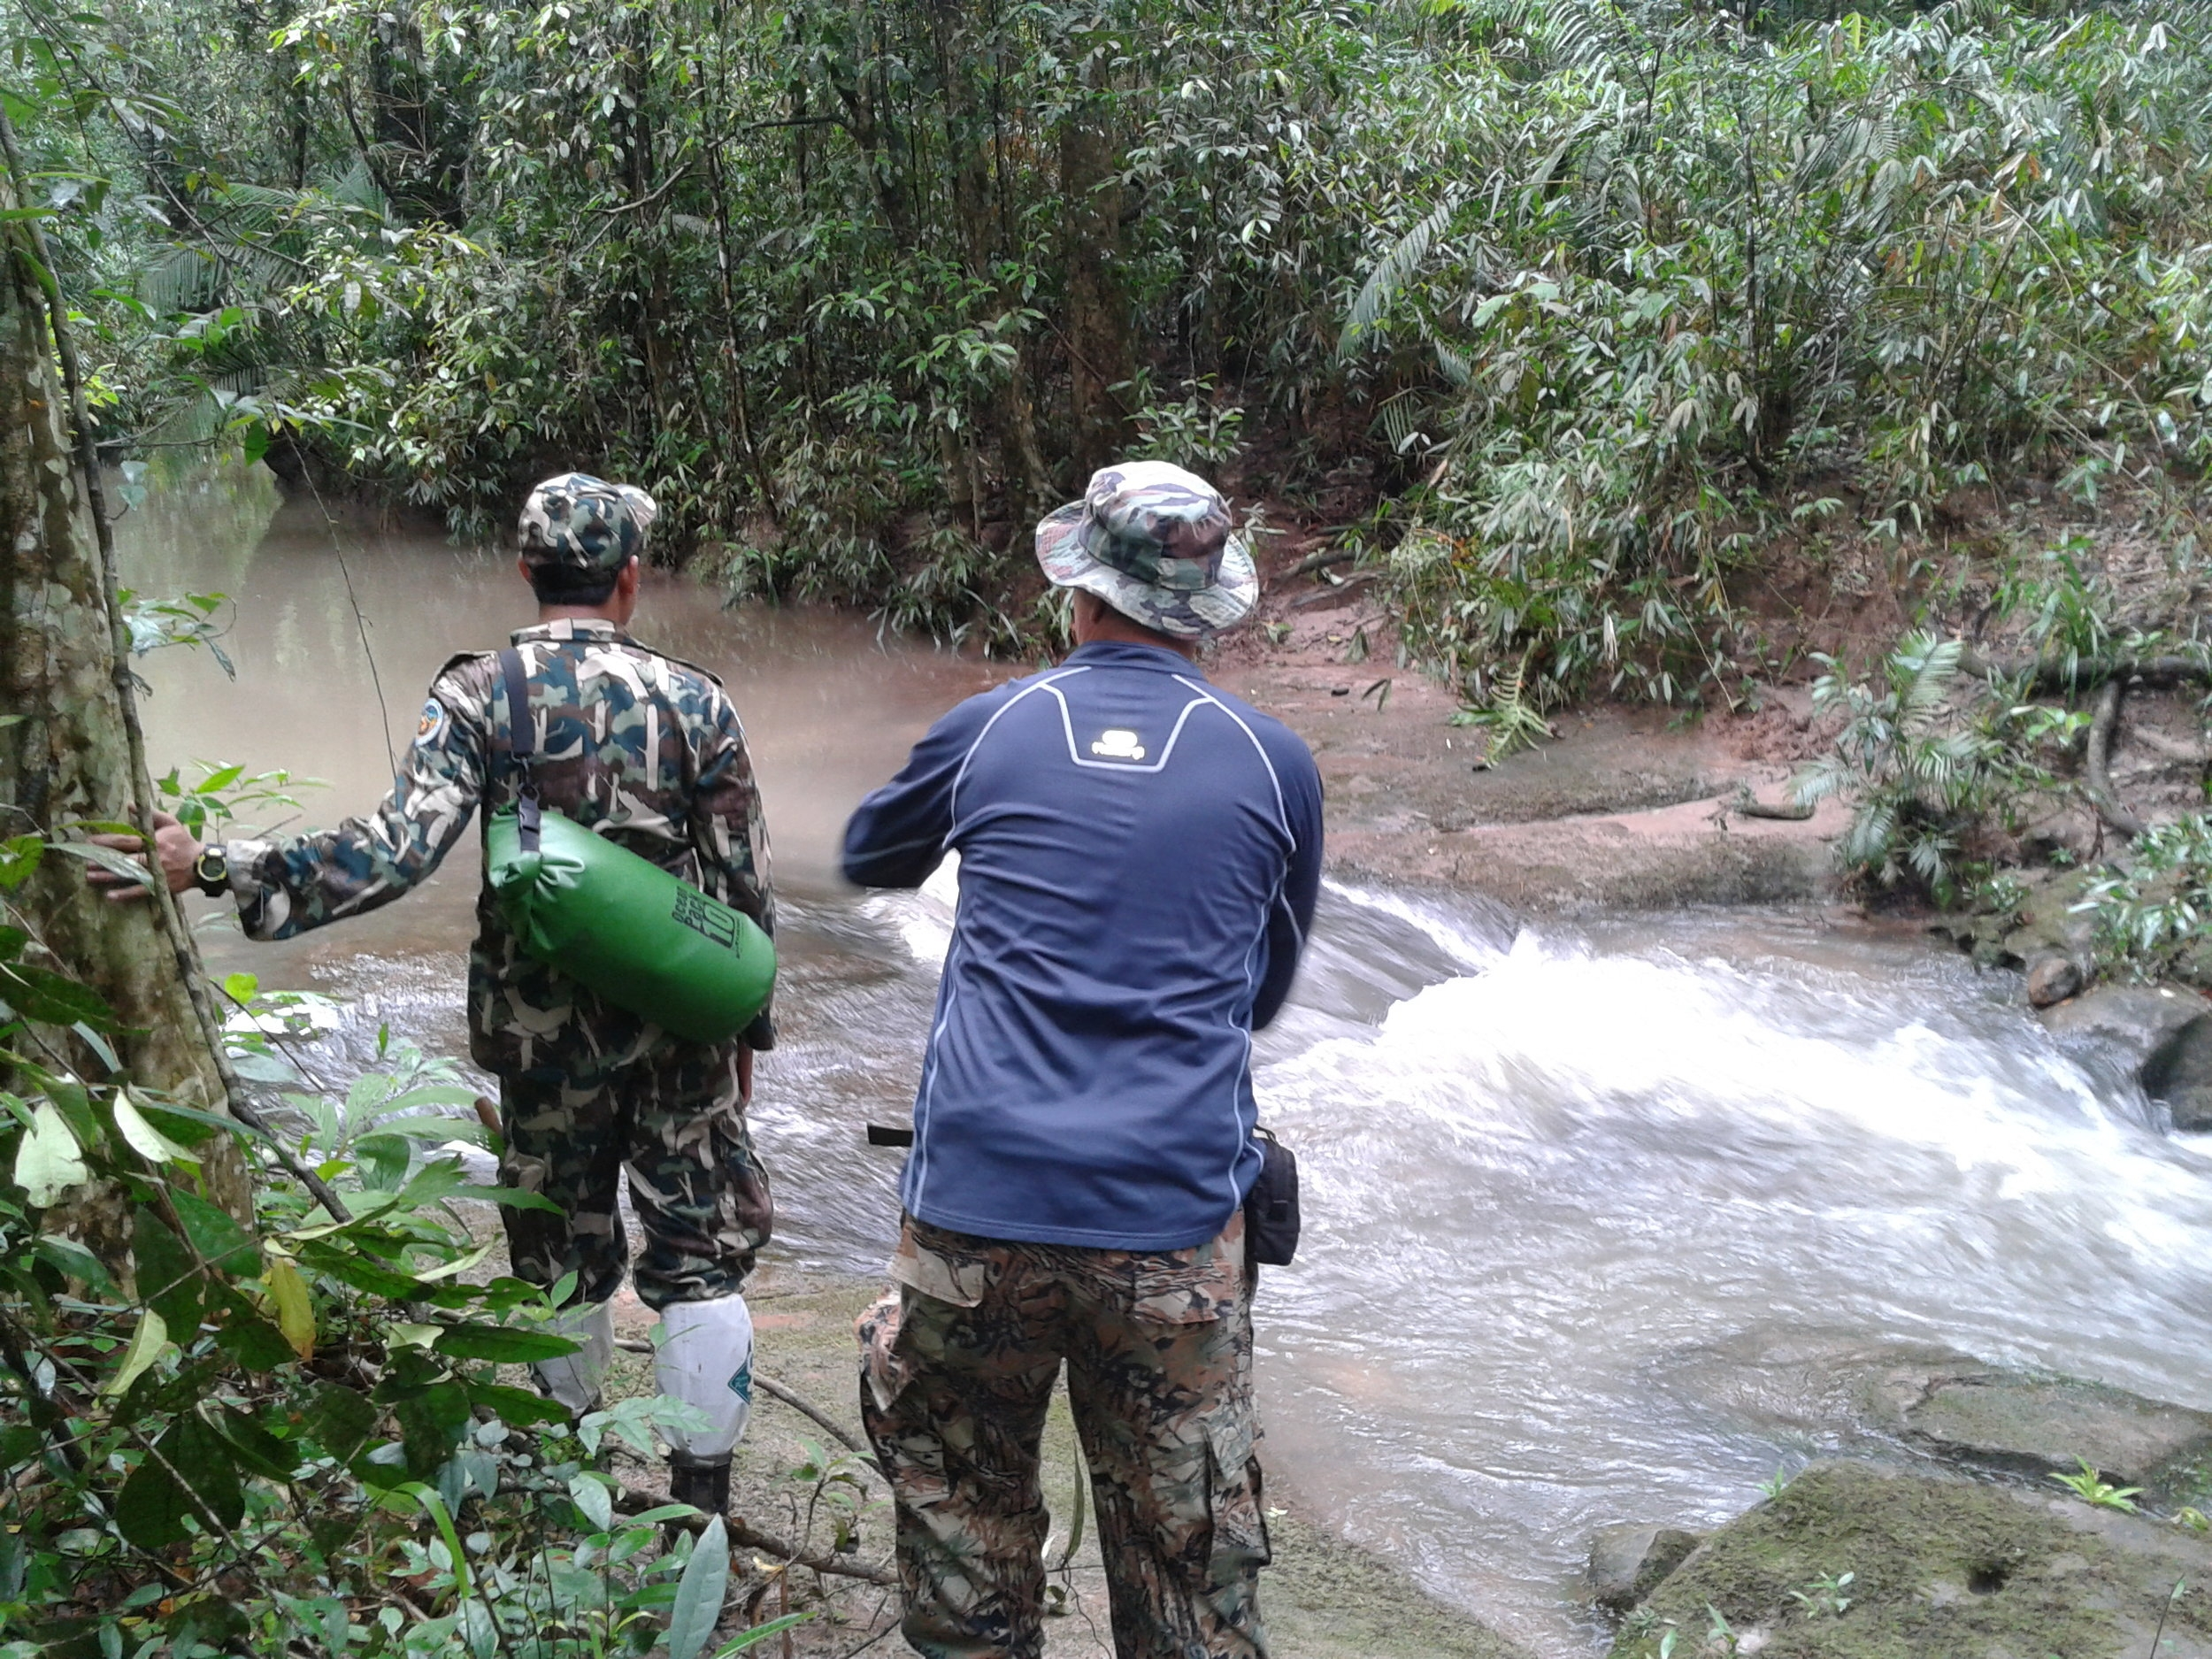 Surving Together team crossing the river path to obtain camera traps (Khao Yai National Park 3.09.14).